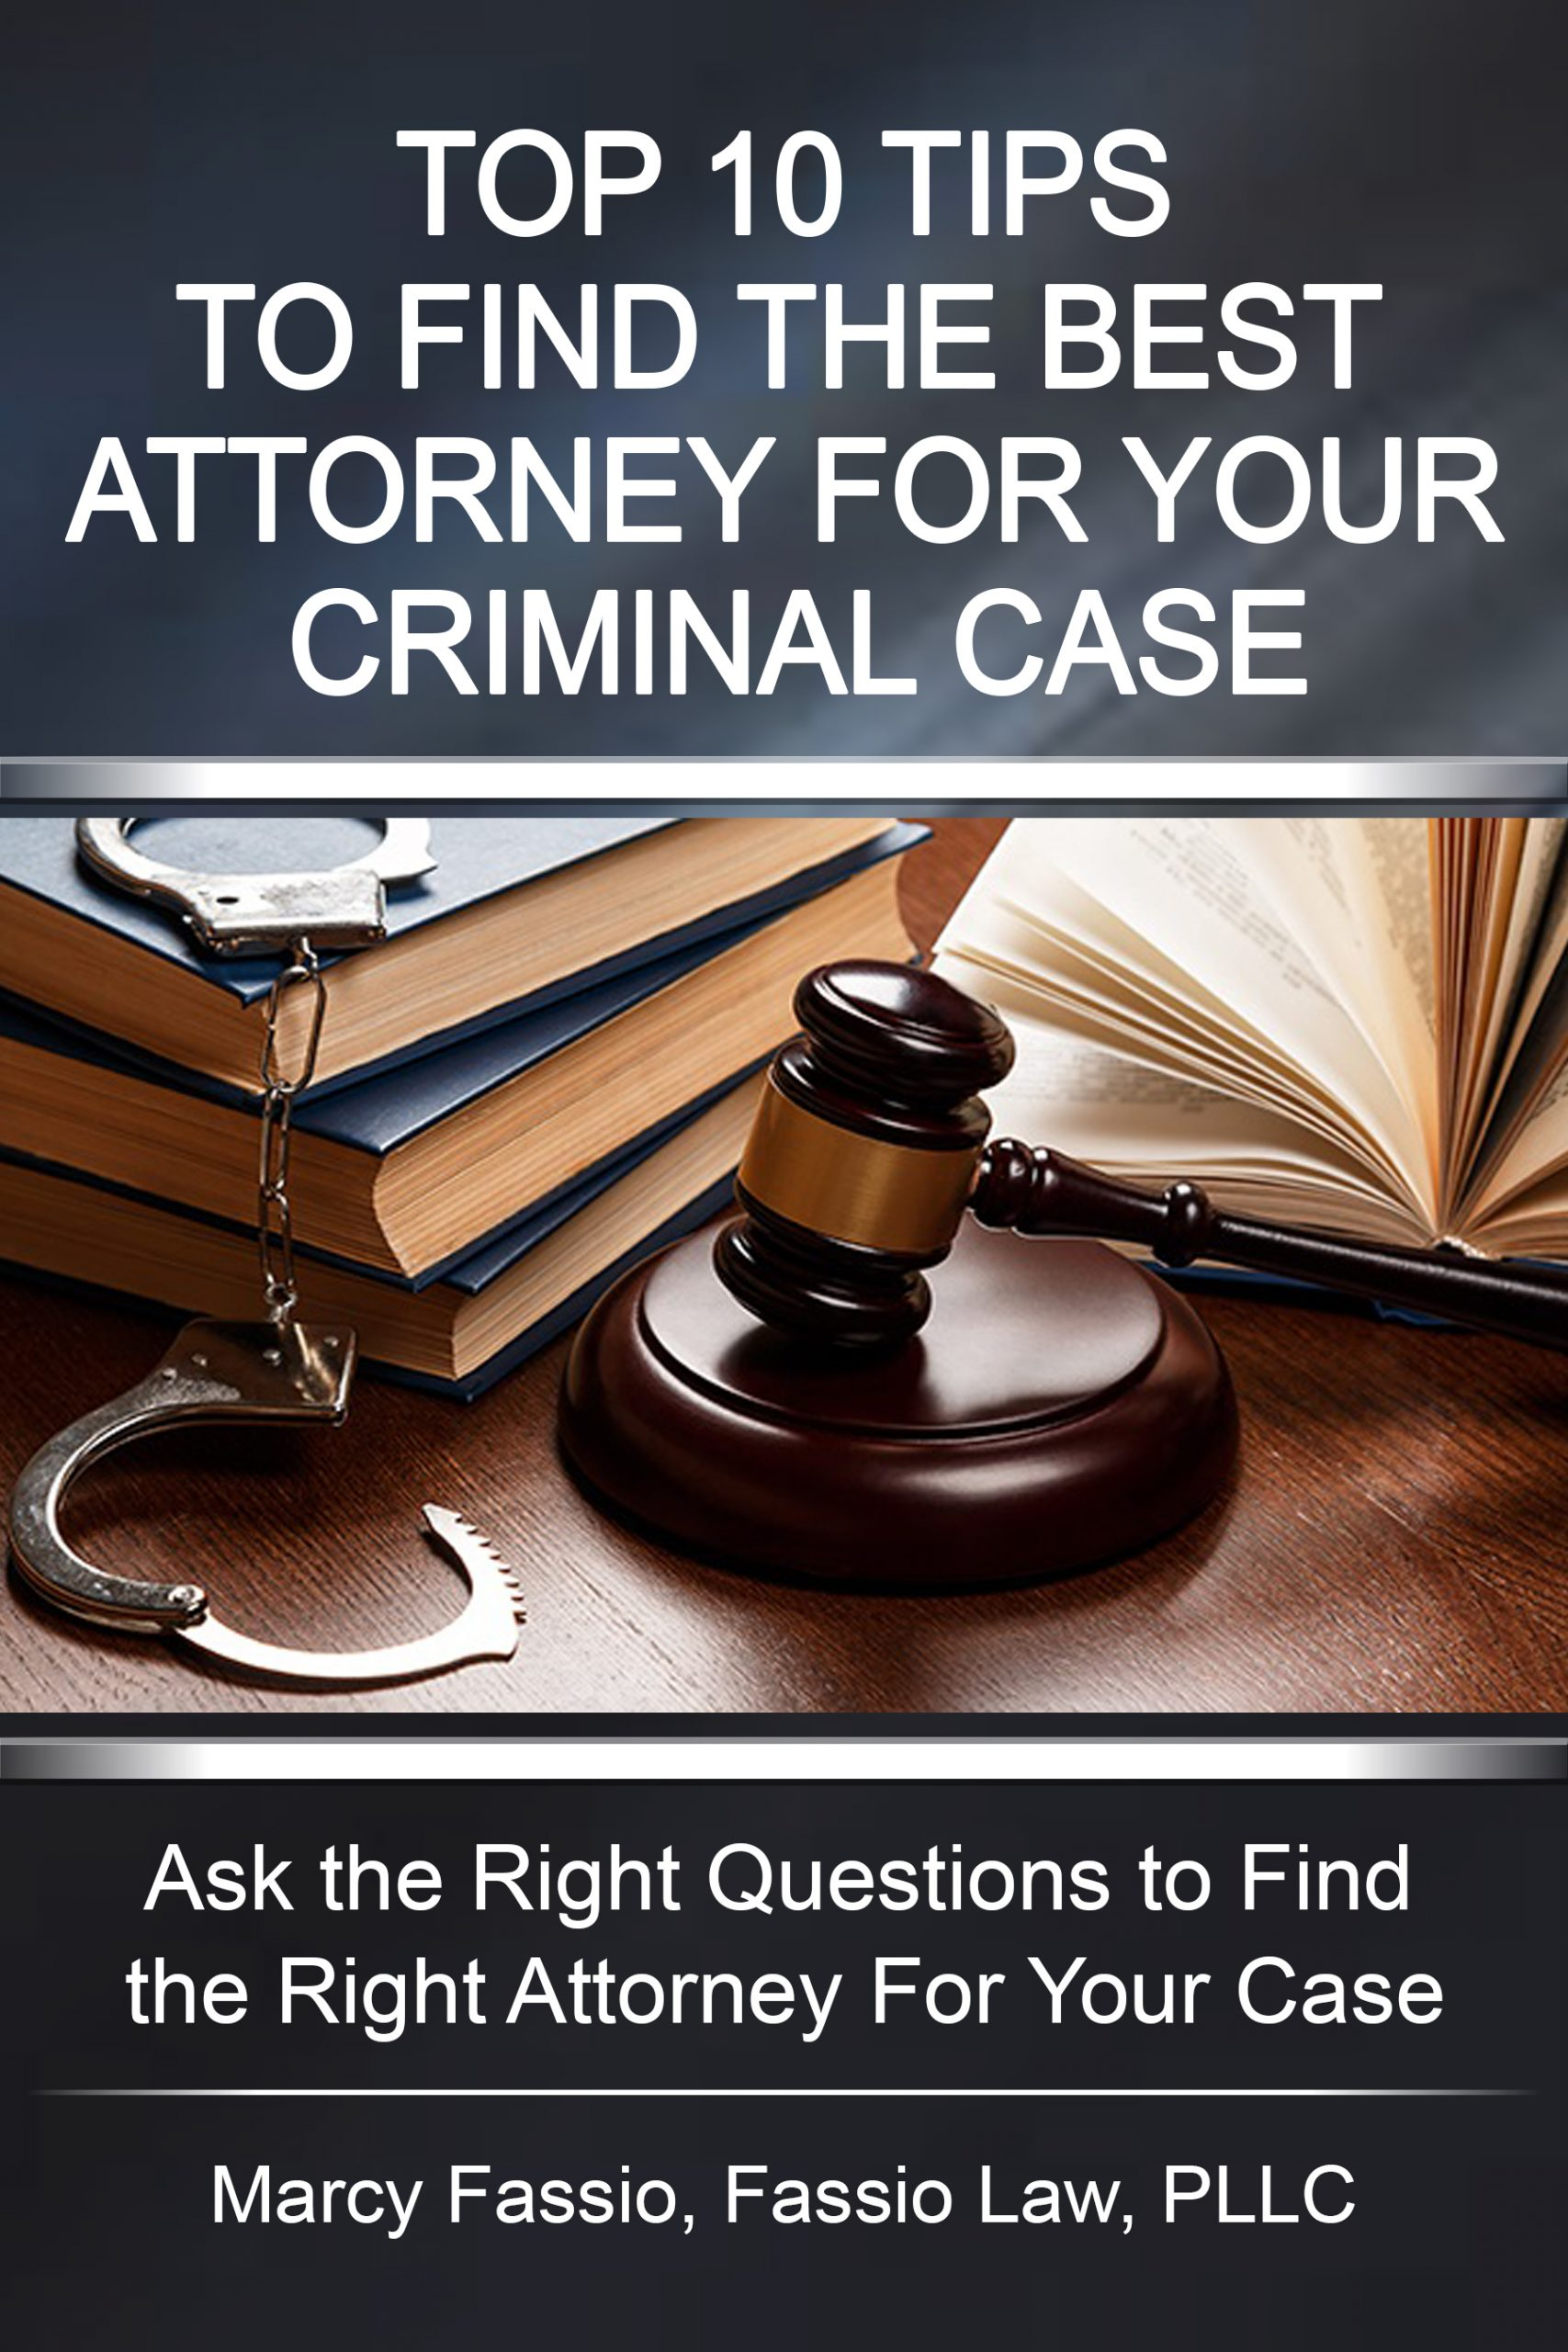 Top Ten Tips to FInd the Best Attorney for Your Criminal Case